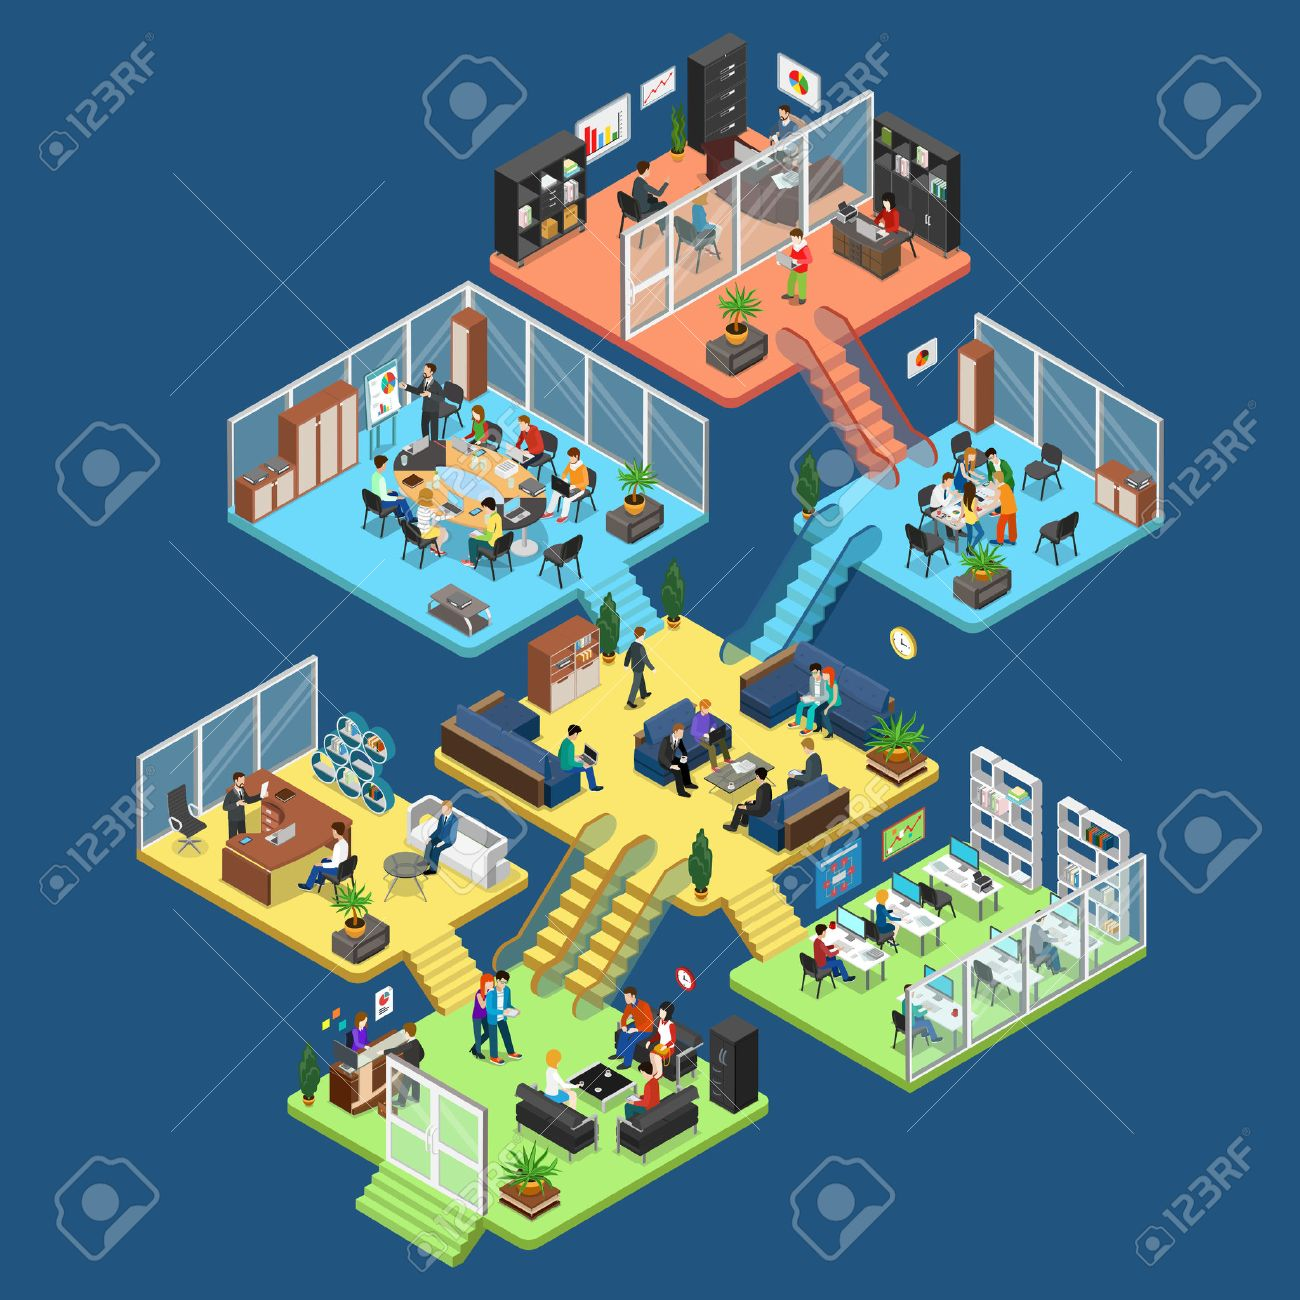 Flat isometric office center floors interior, company departments with staff vector illustration. 3d isometry Business Architecture concept. Director, accountant, manager, client, secretary characters - 64110869